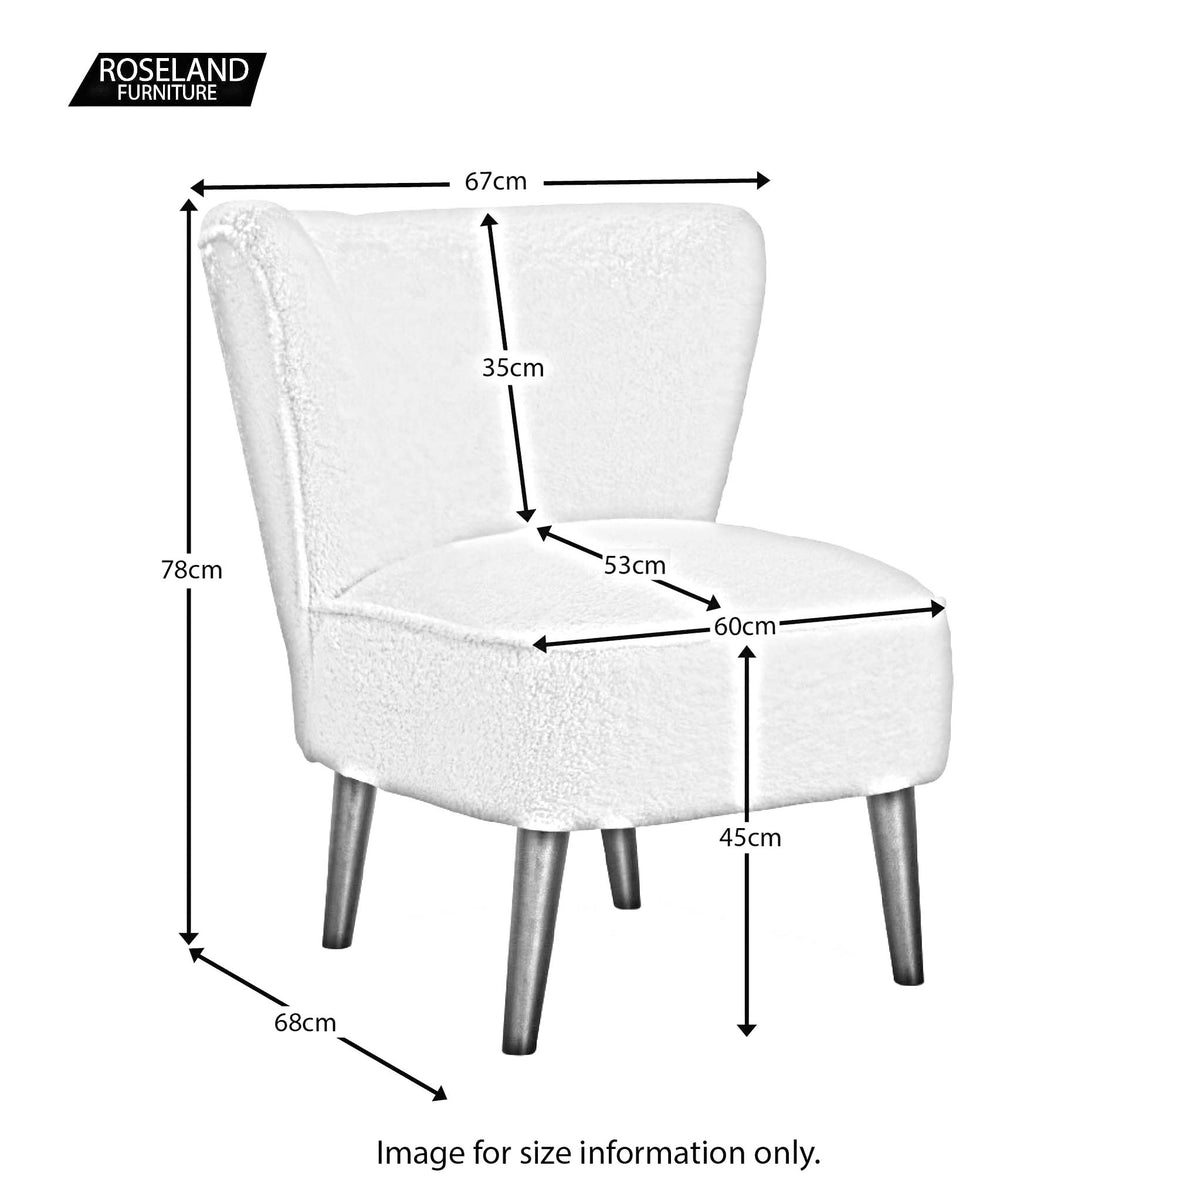 Malmesbury Teddy Accent Chair - Size Guide